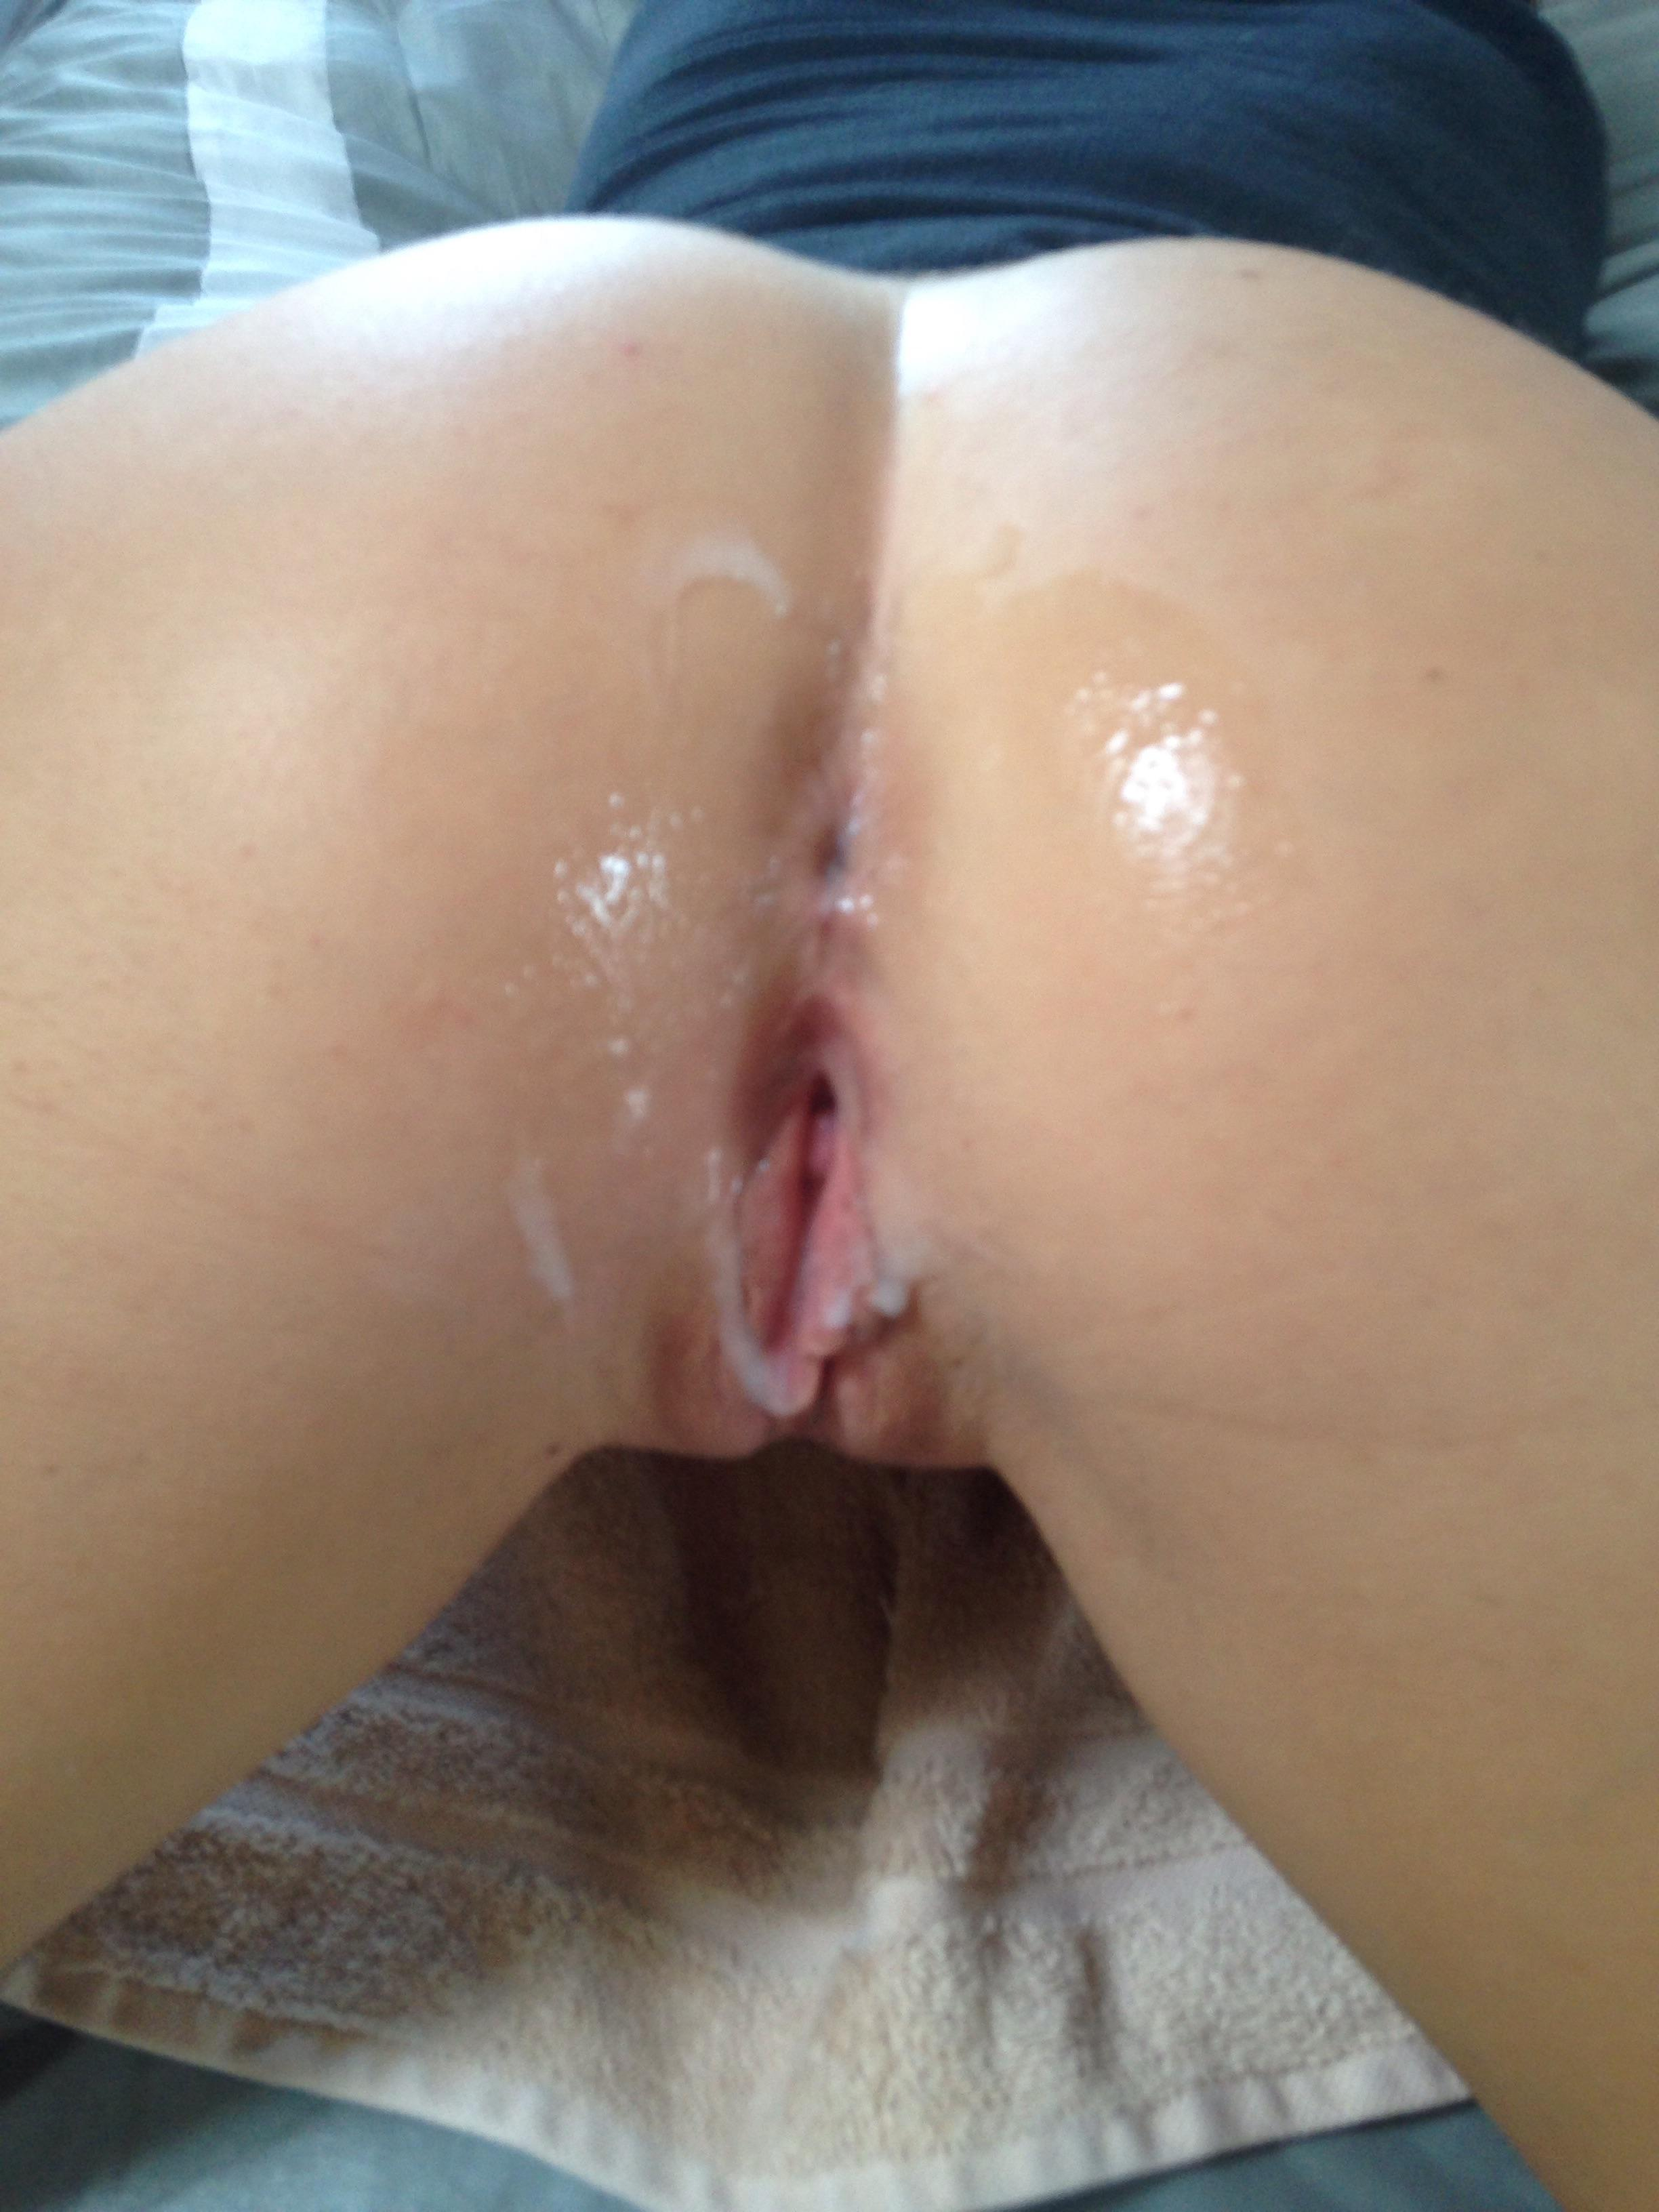 assed-naked-amature-girl-anal-creampie